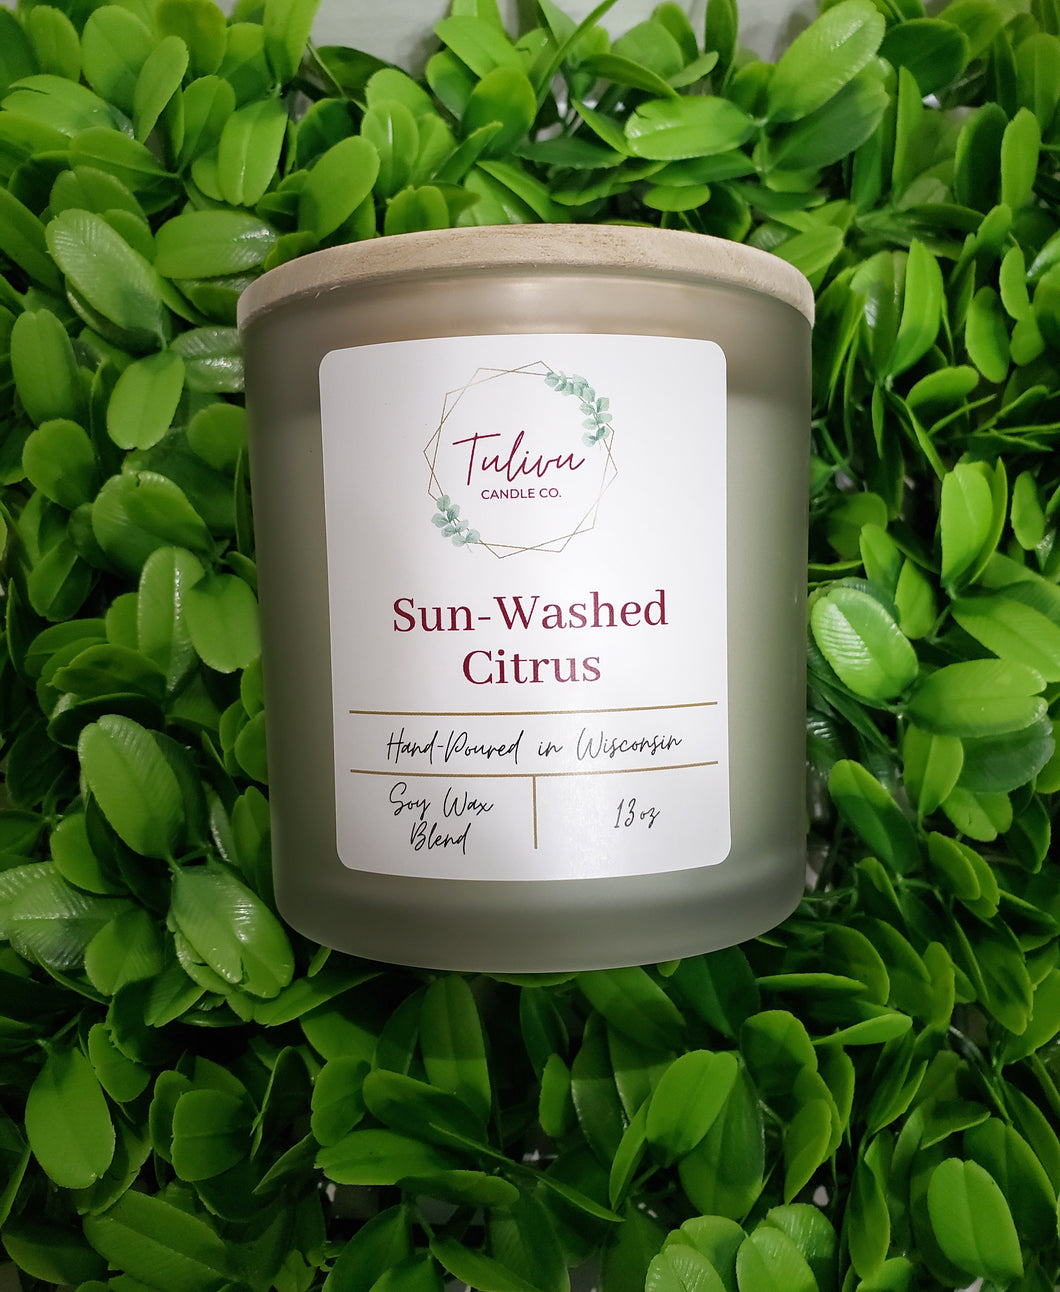 Sun-Washed Citrus Candle